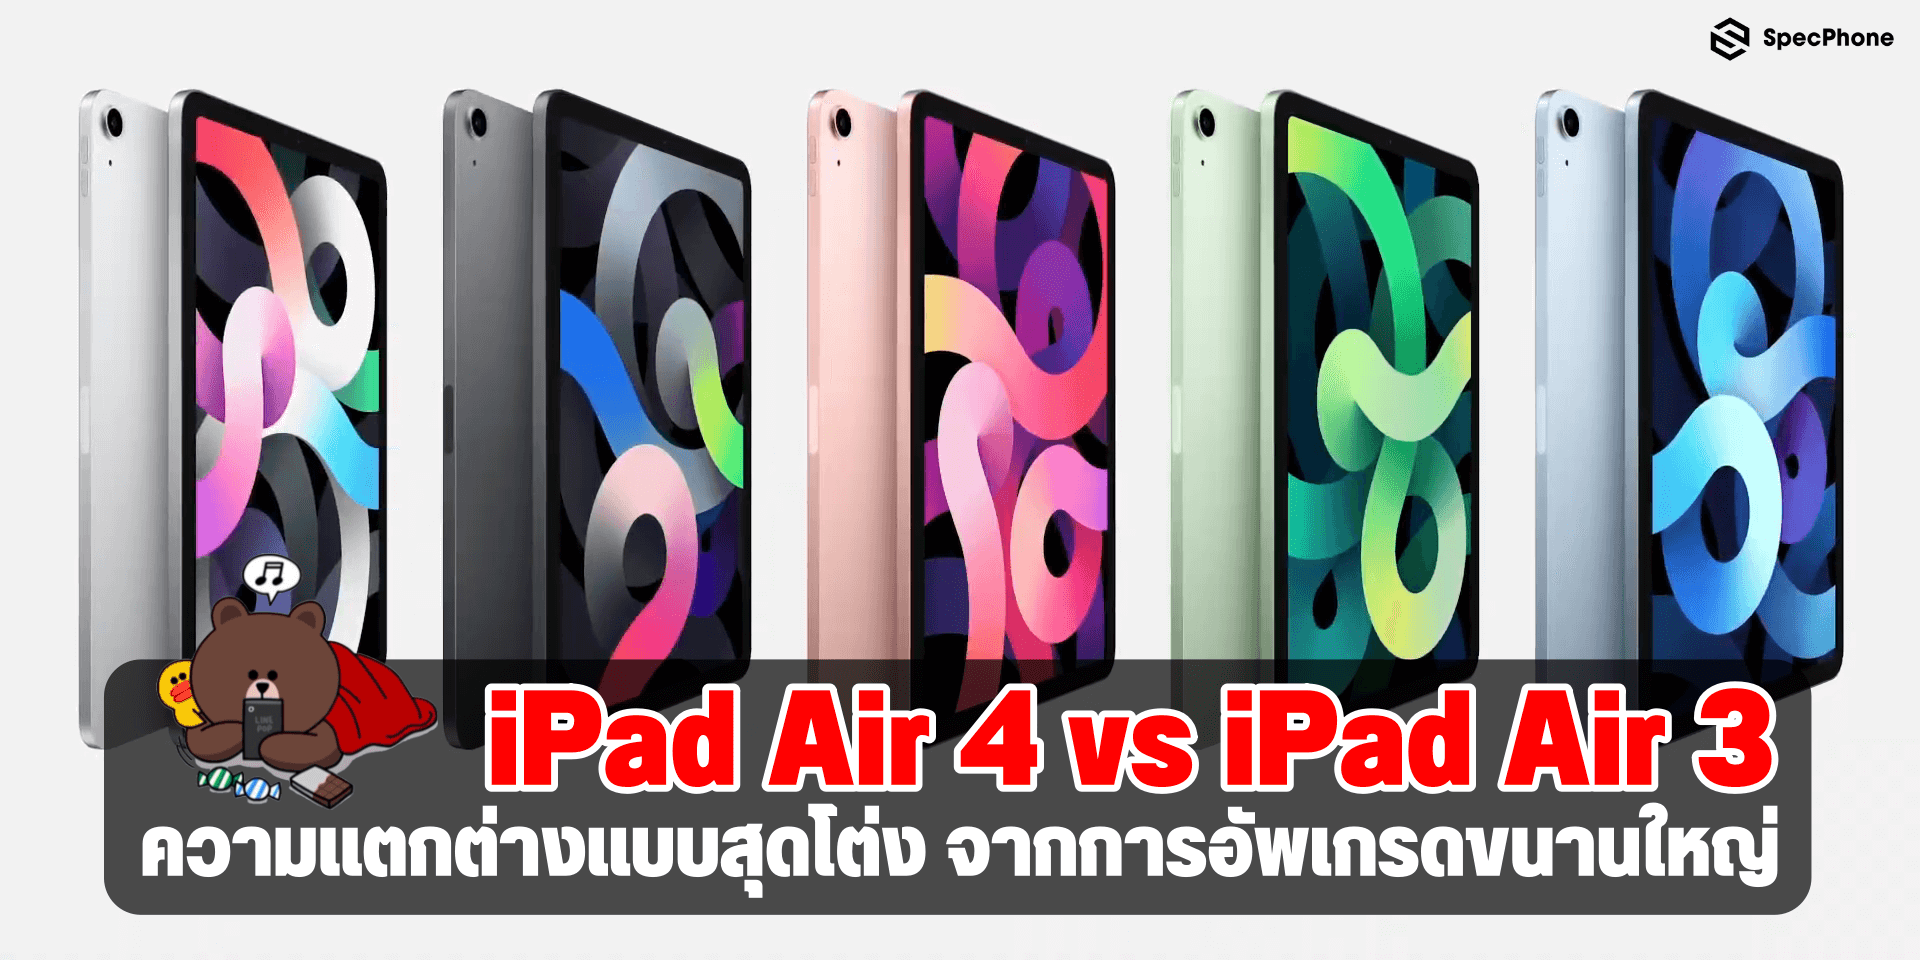 ipad air 4 vs ipad air 3 cover